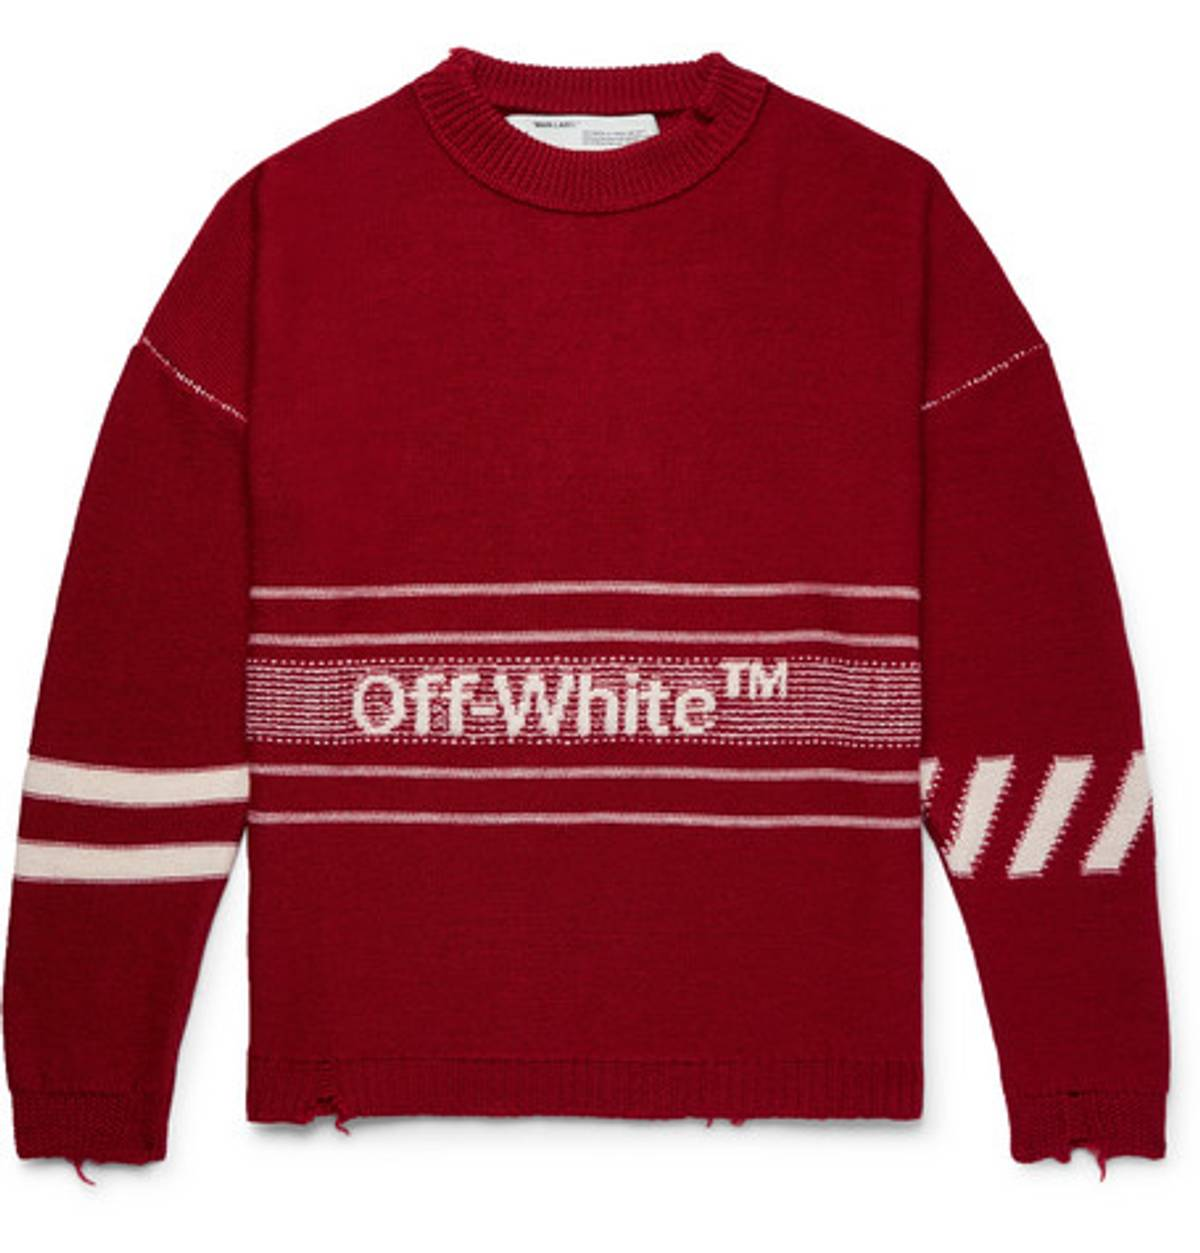 Off White Oversized Distressed Logo Intarsia Wool Sweater Size L $491